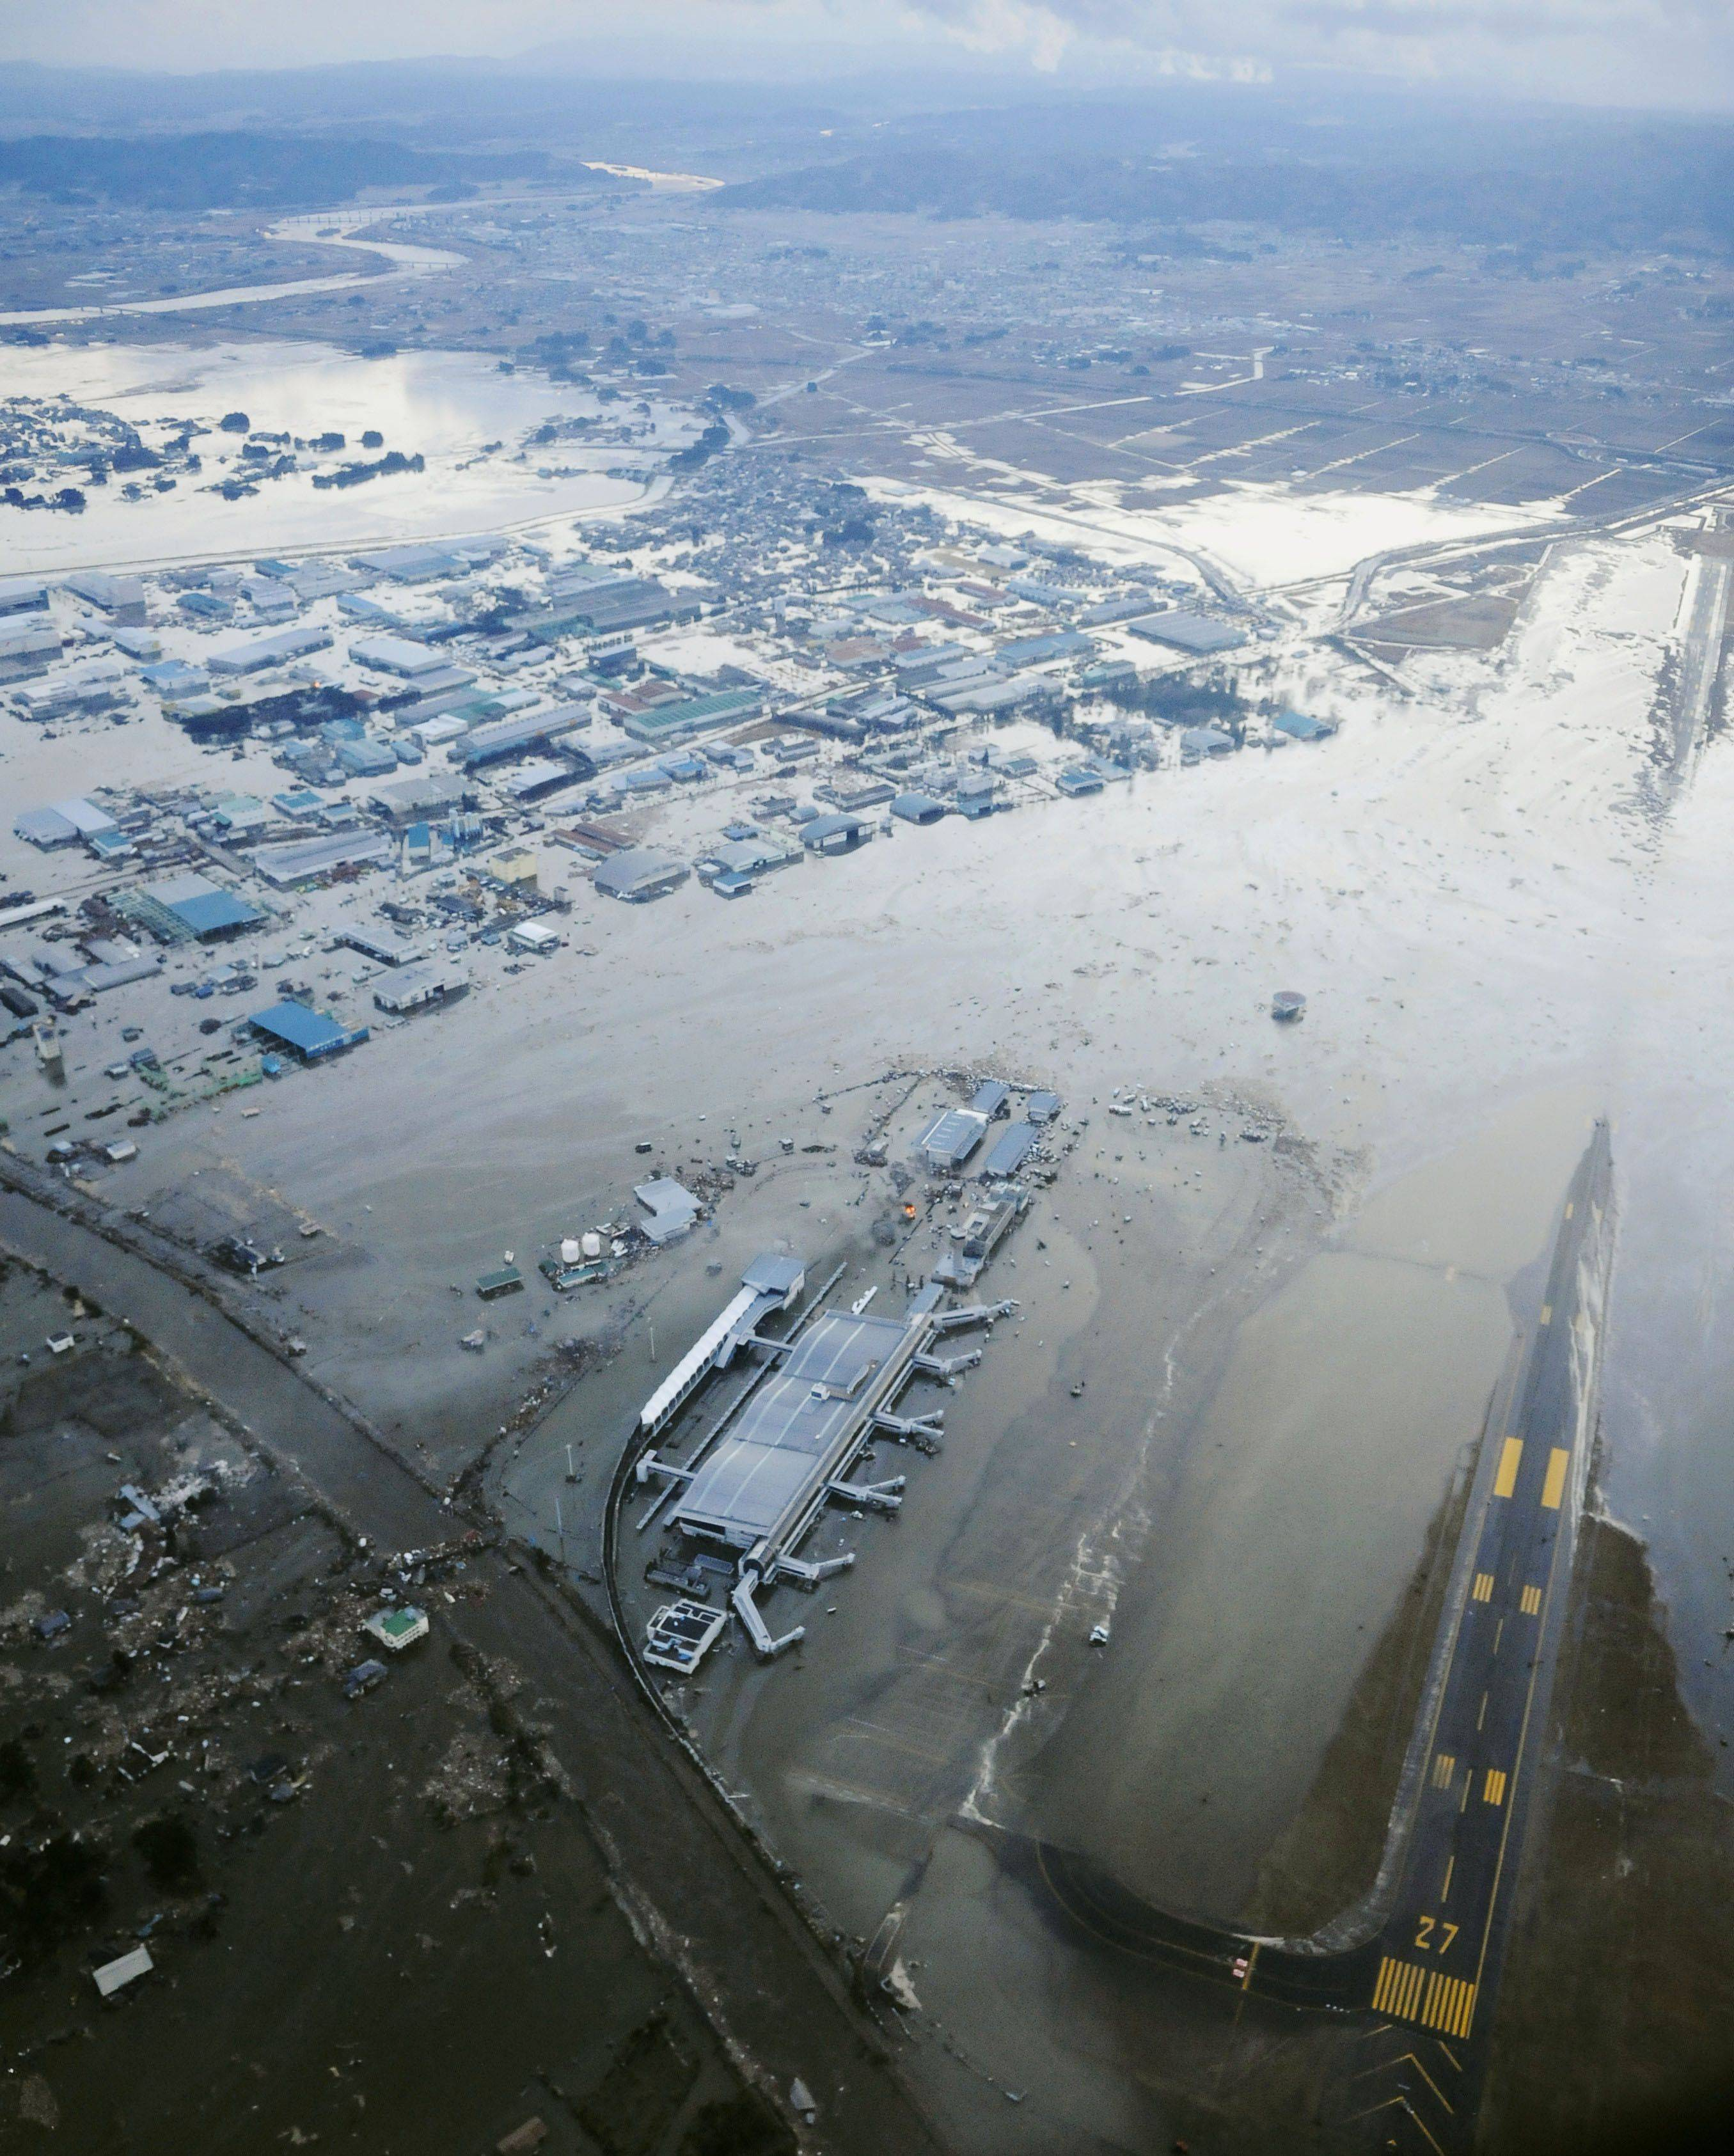 Tarmac and surrounding area are covered with water from tsunami at Sendai Airport in Sendai, Miyagi Prefecture (state).